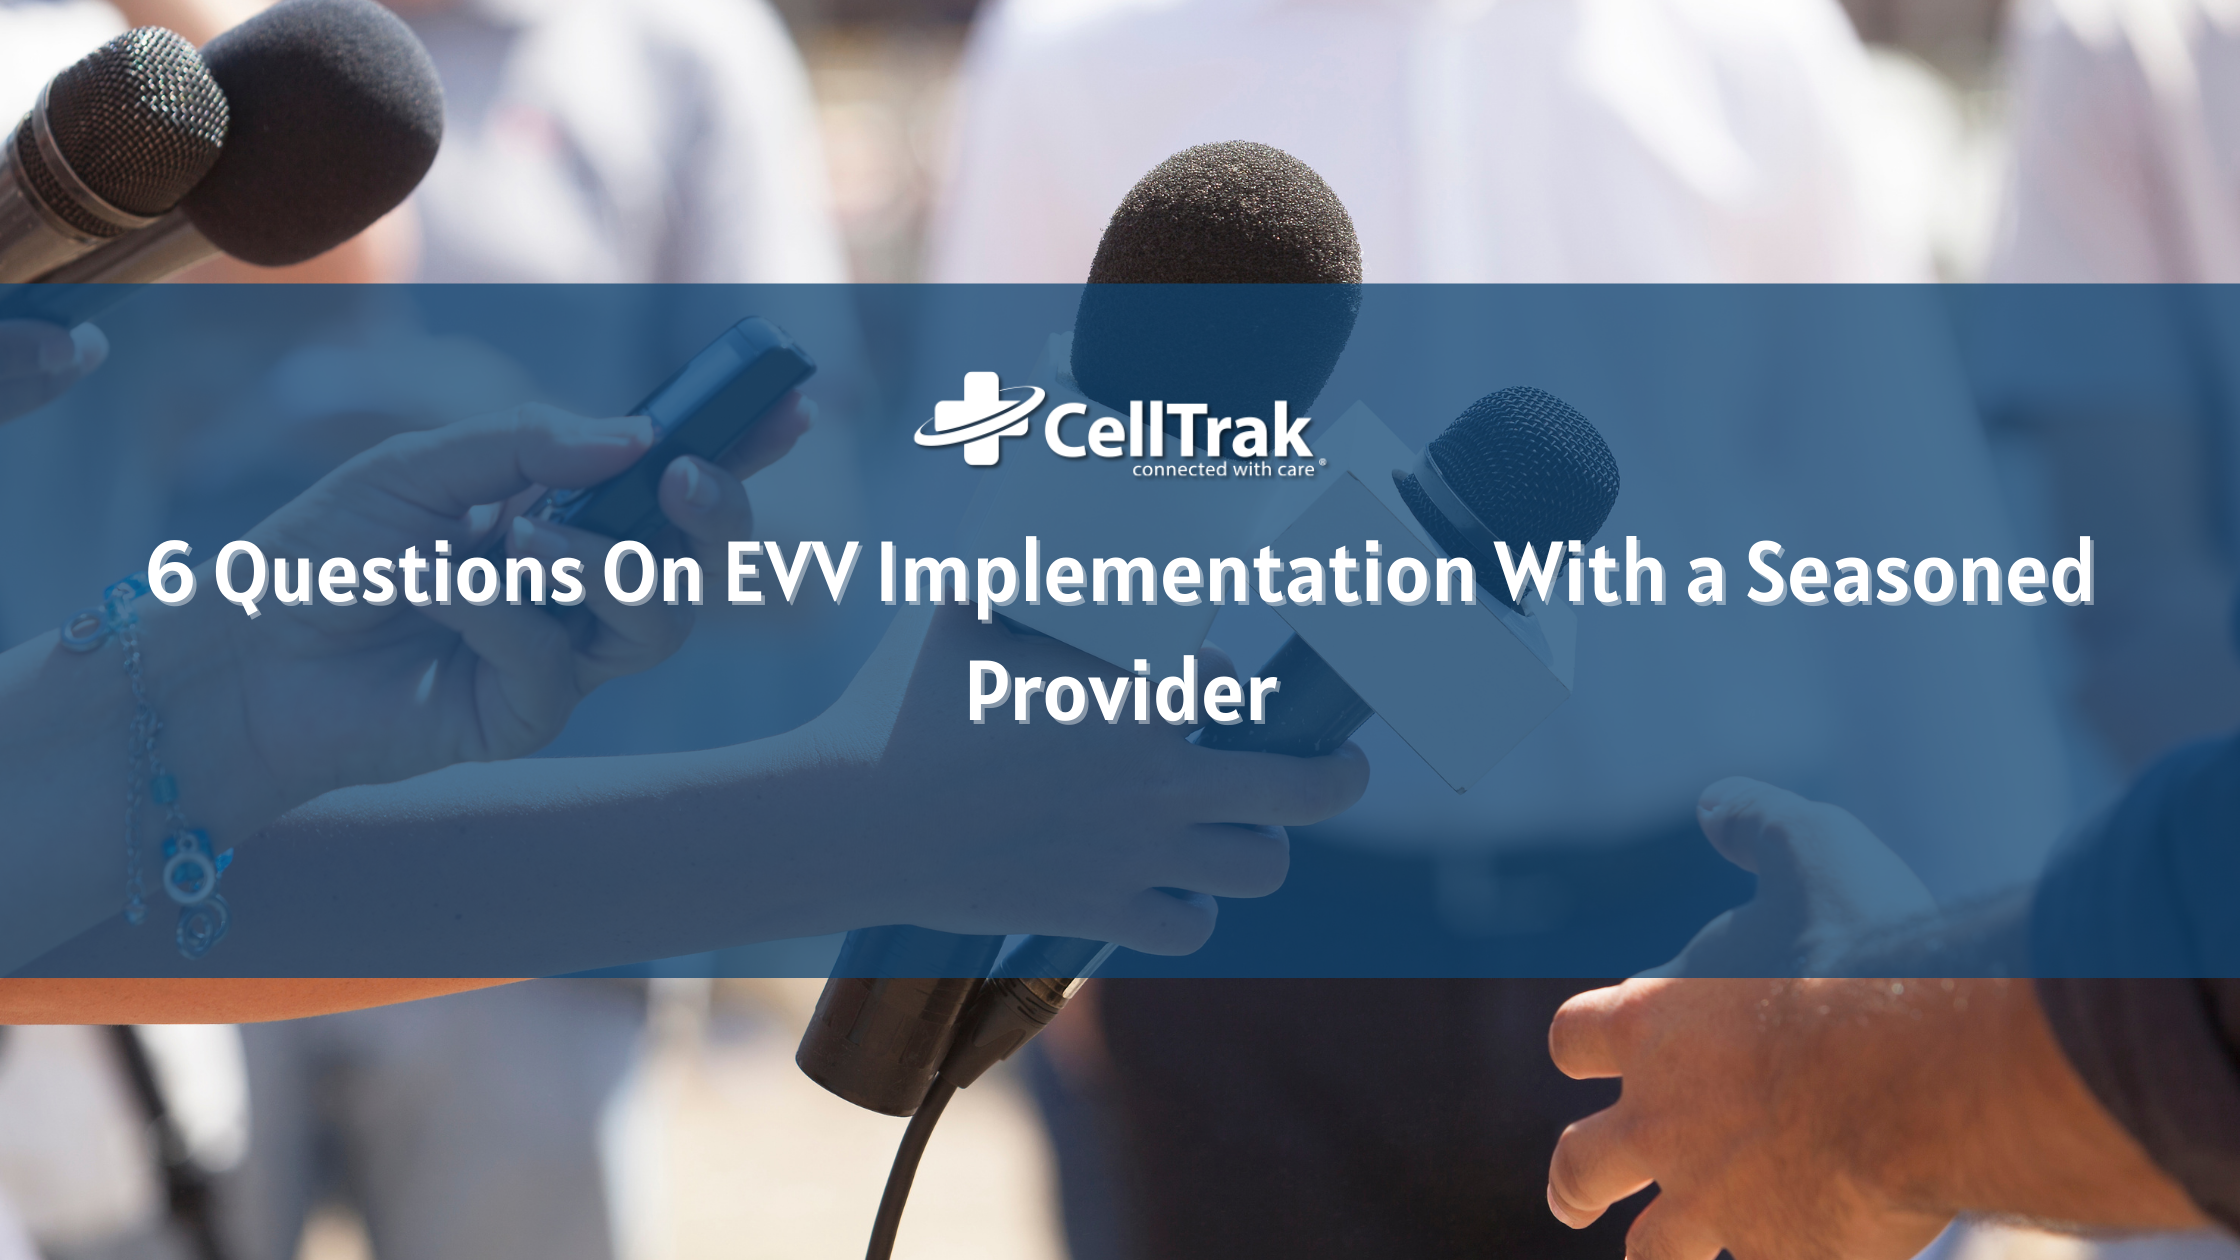 6 questions EVV implementation with a seasoned provider